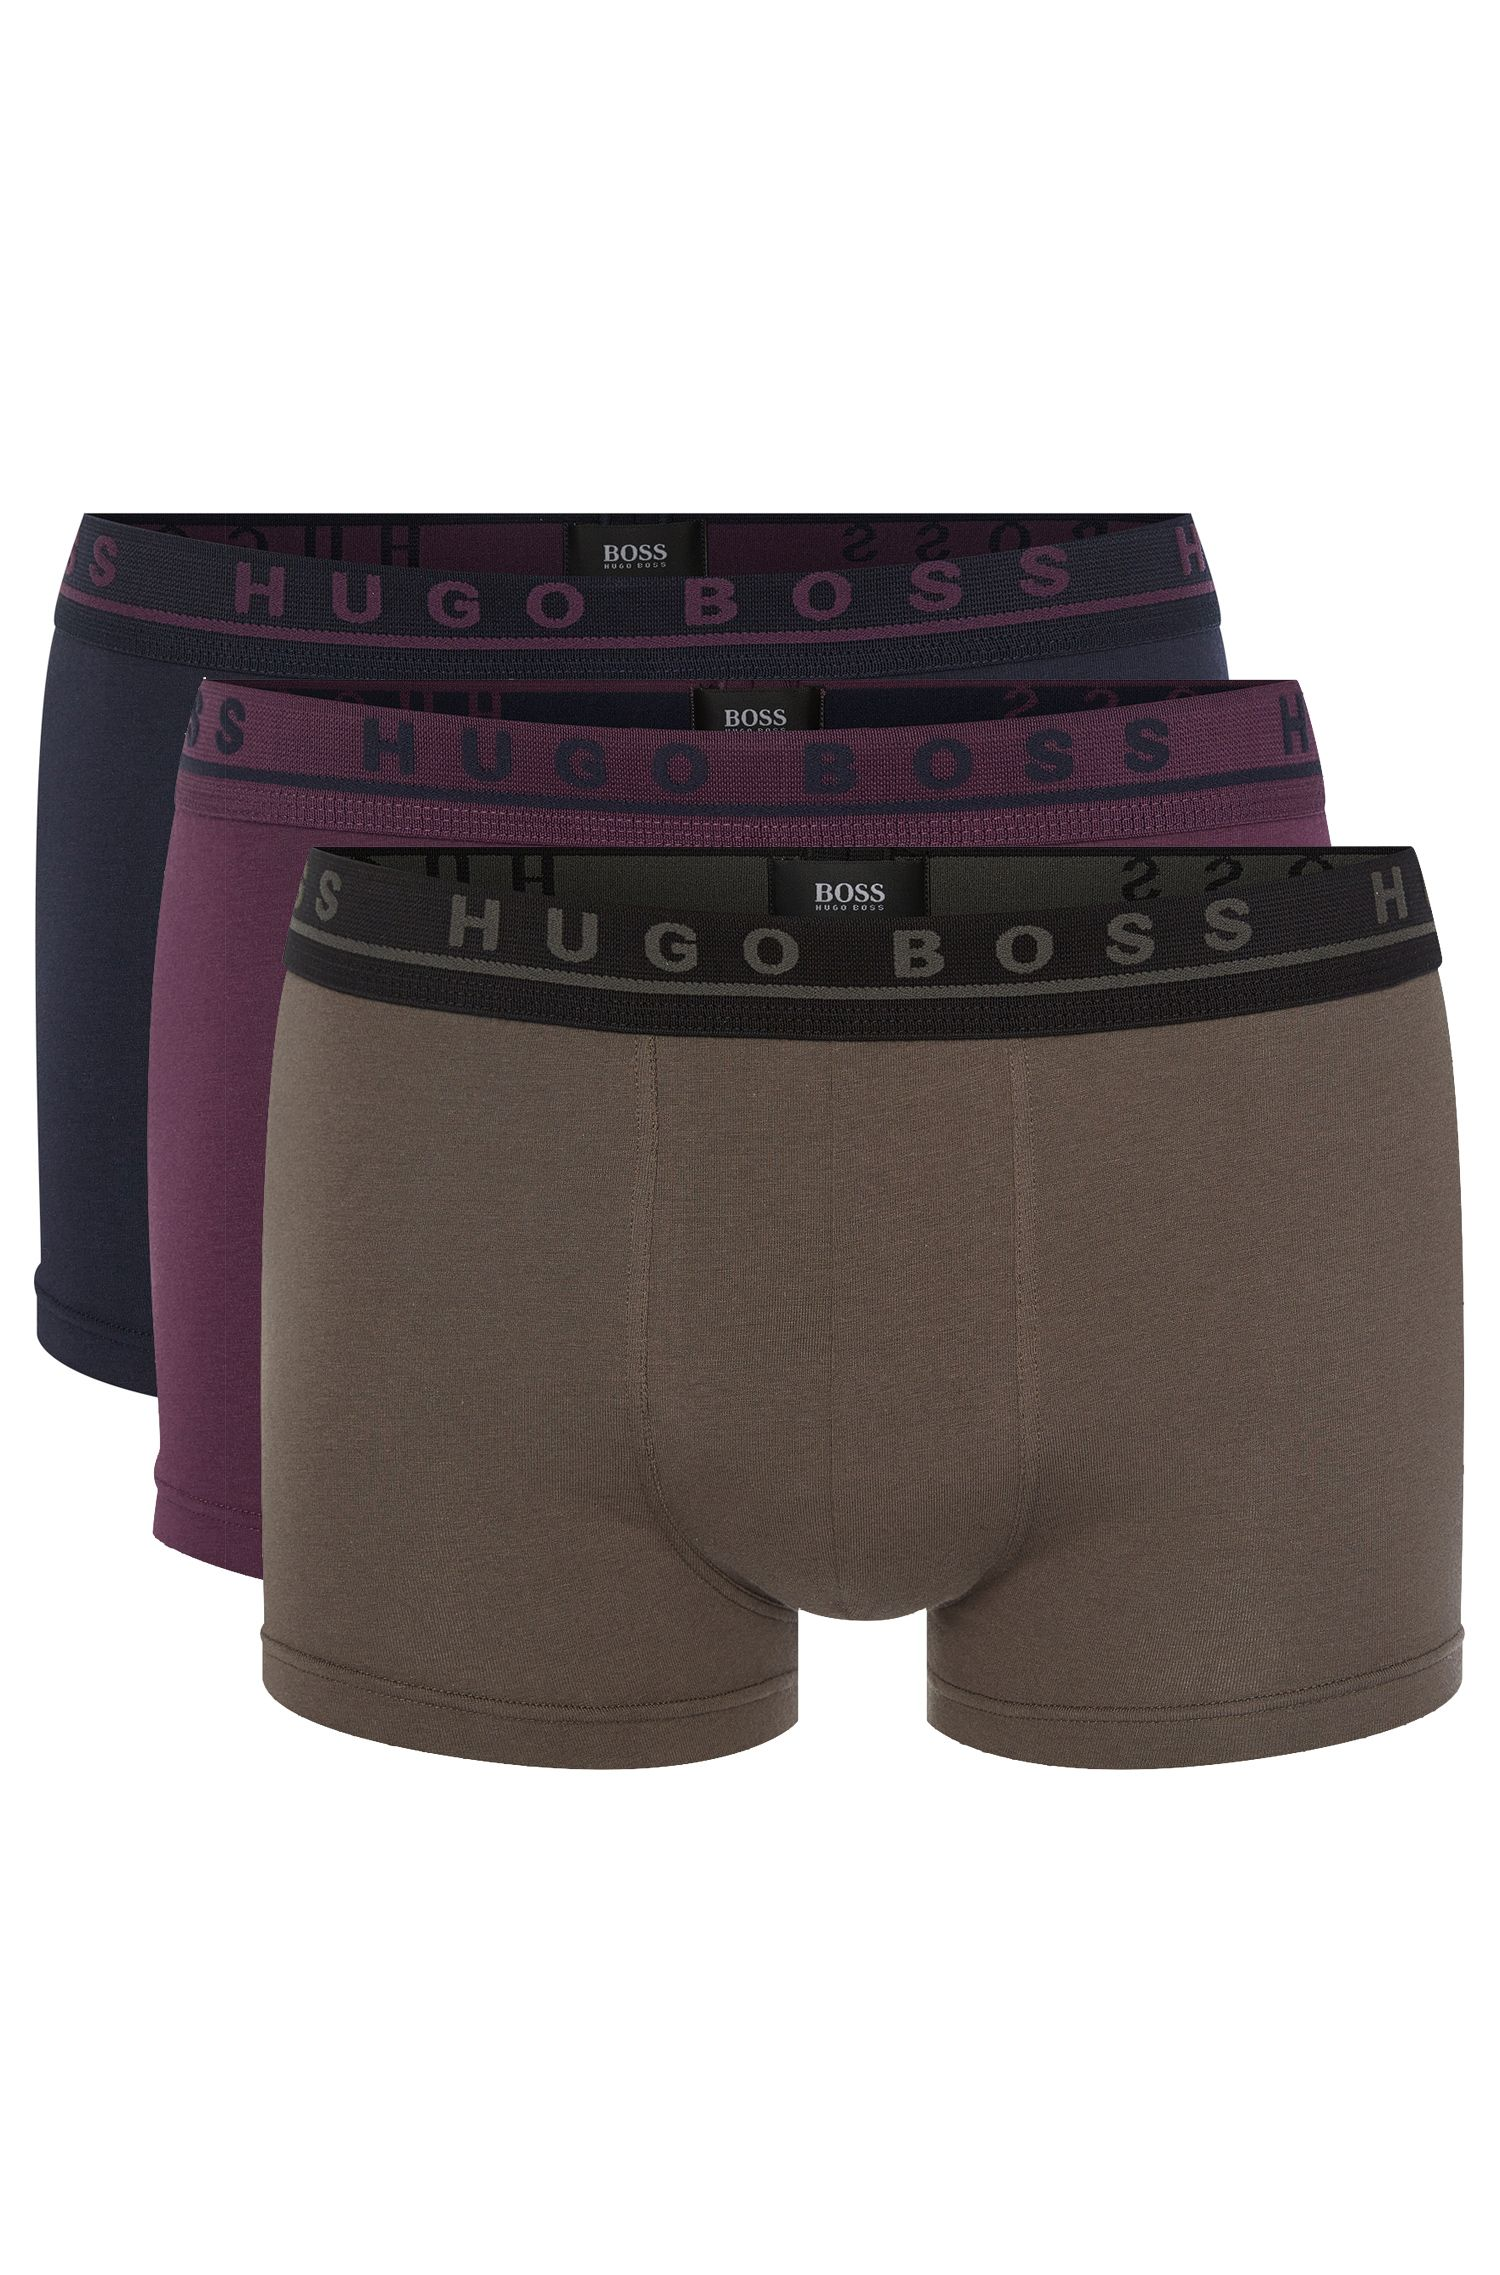 'Boxer 3P FN Solid' | Stretch Cotton Trunks, 3-Pack